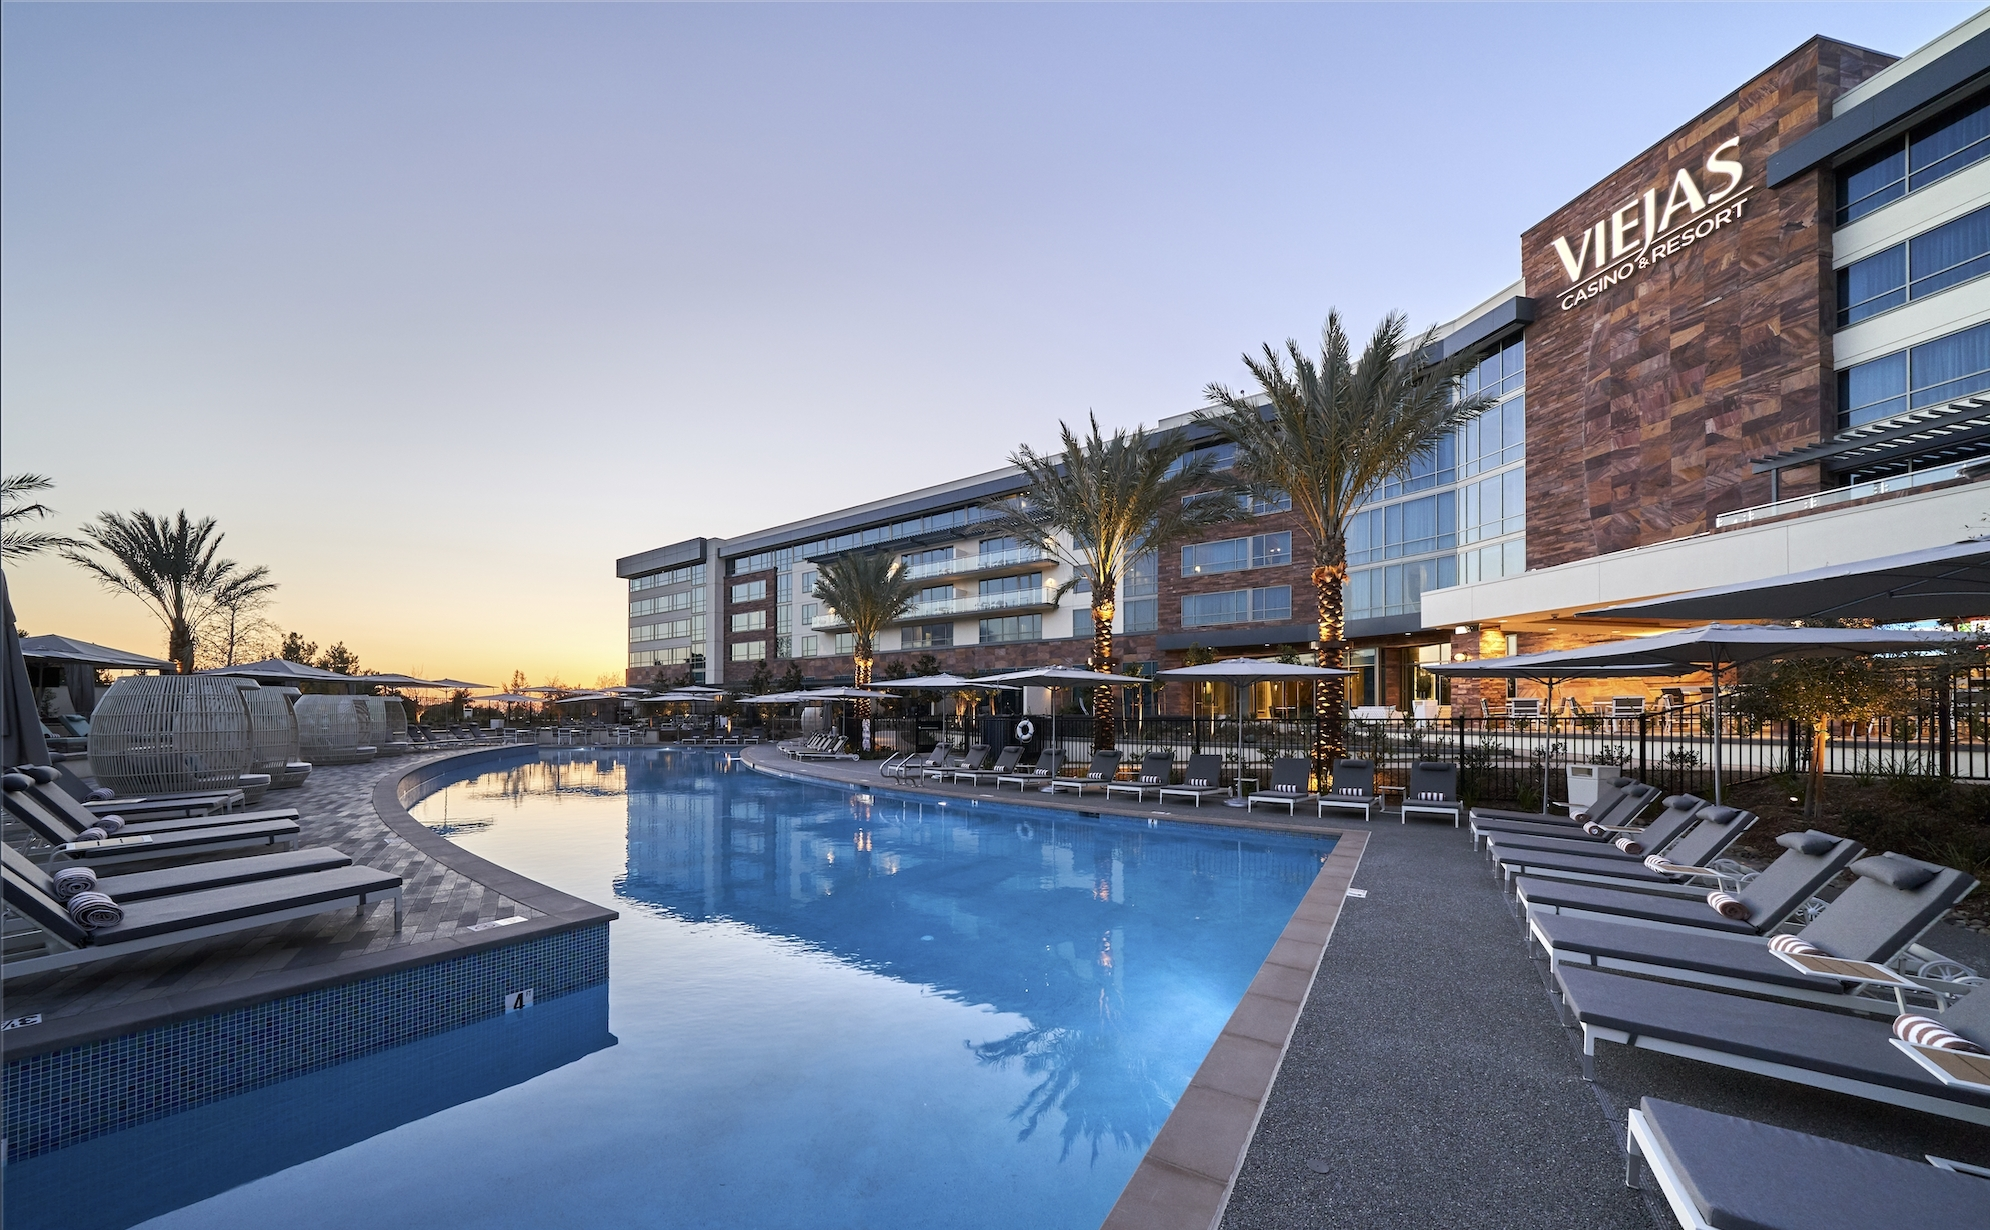 viejas casino resort completes seven year expansion project